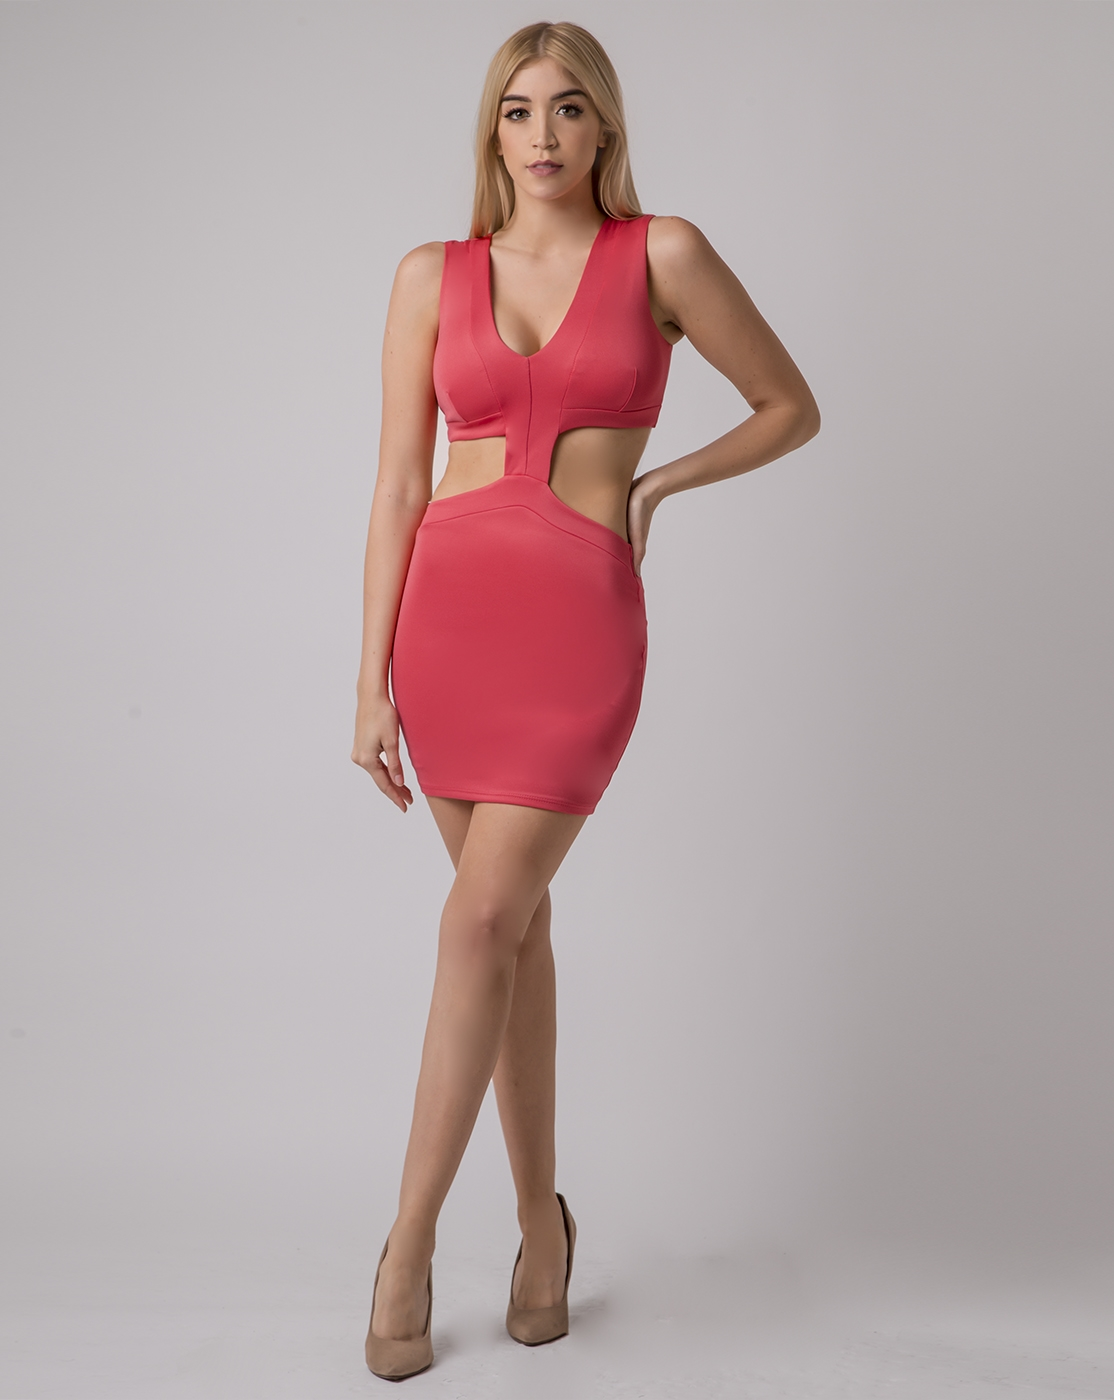 DEEP V SIDE CUT DRESS - orangeshine.com